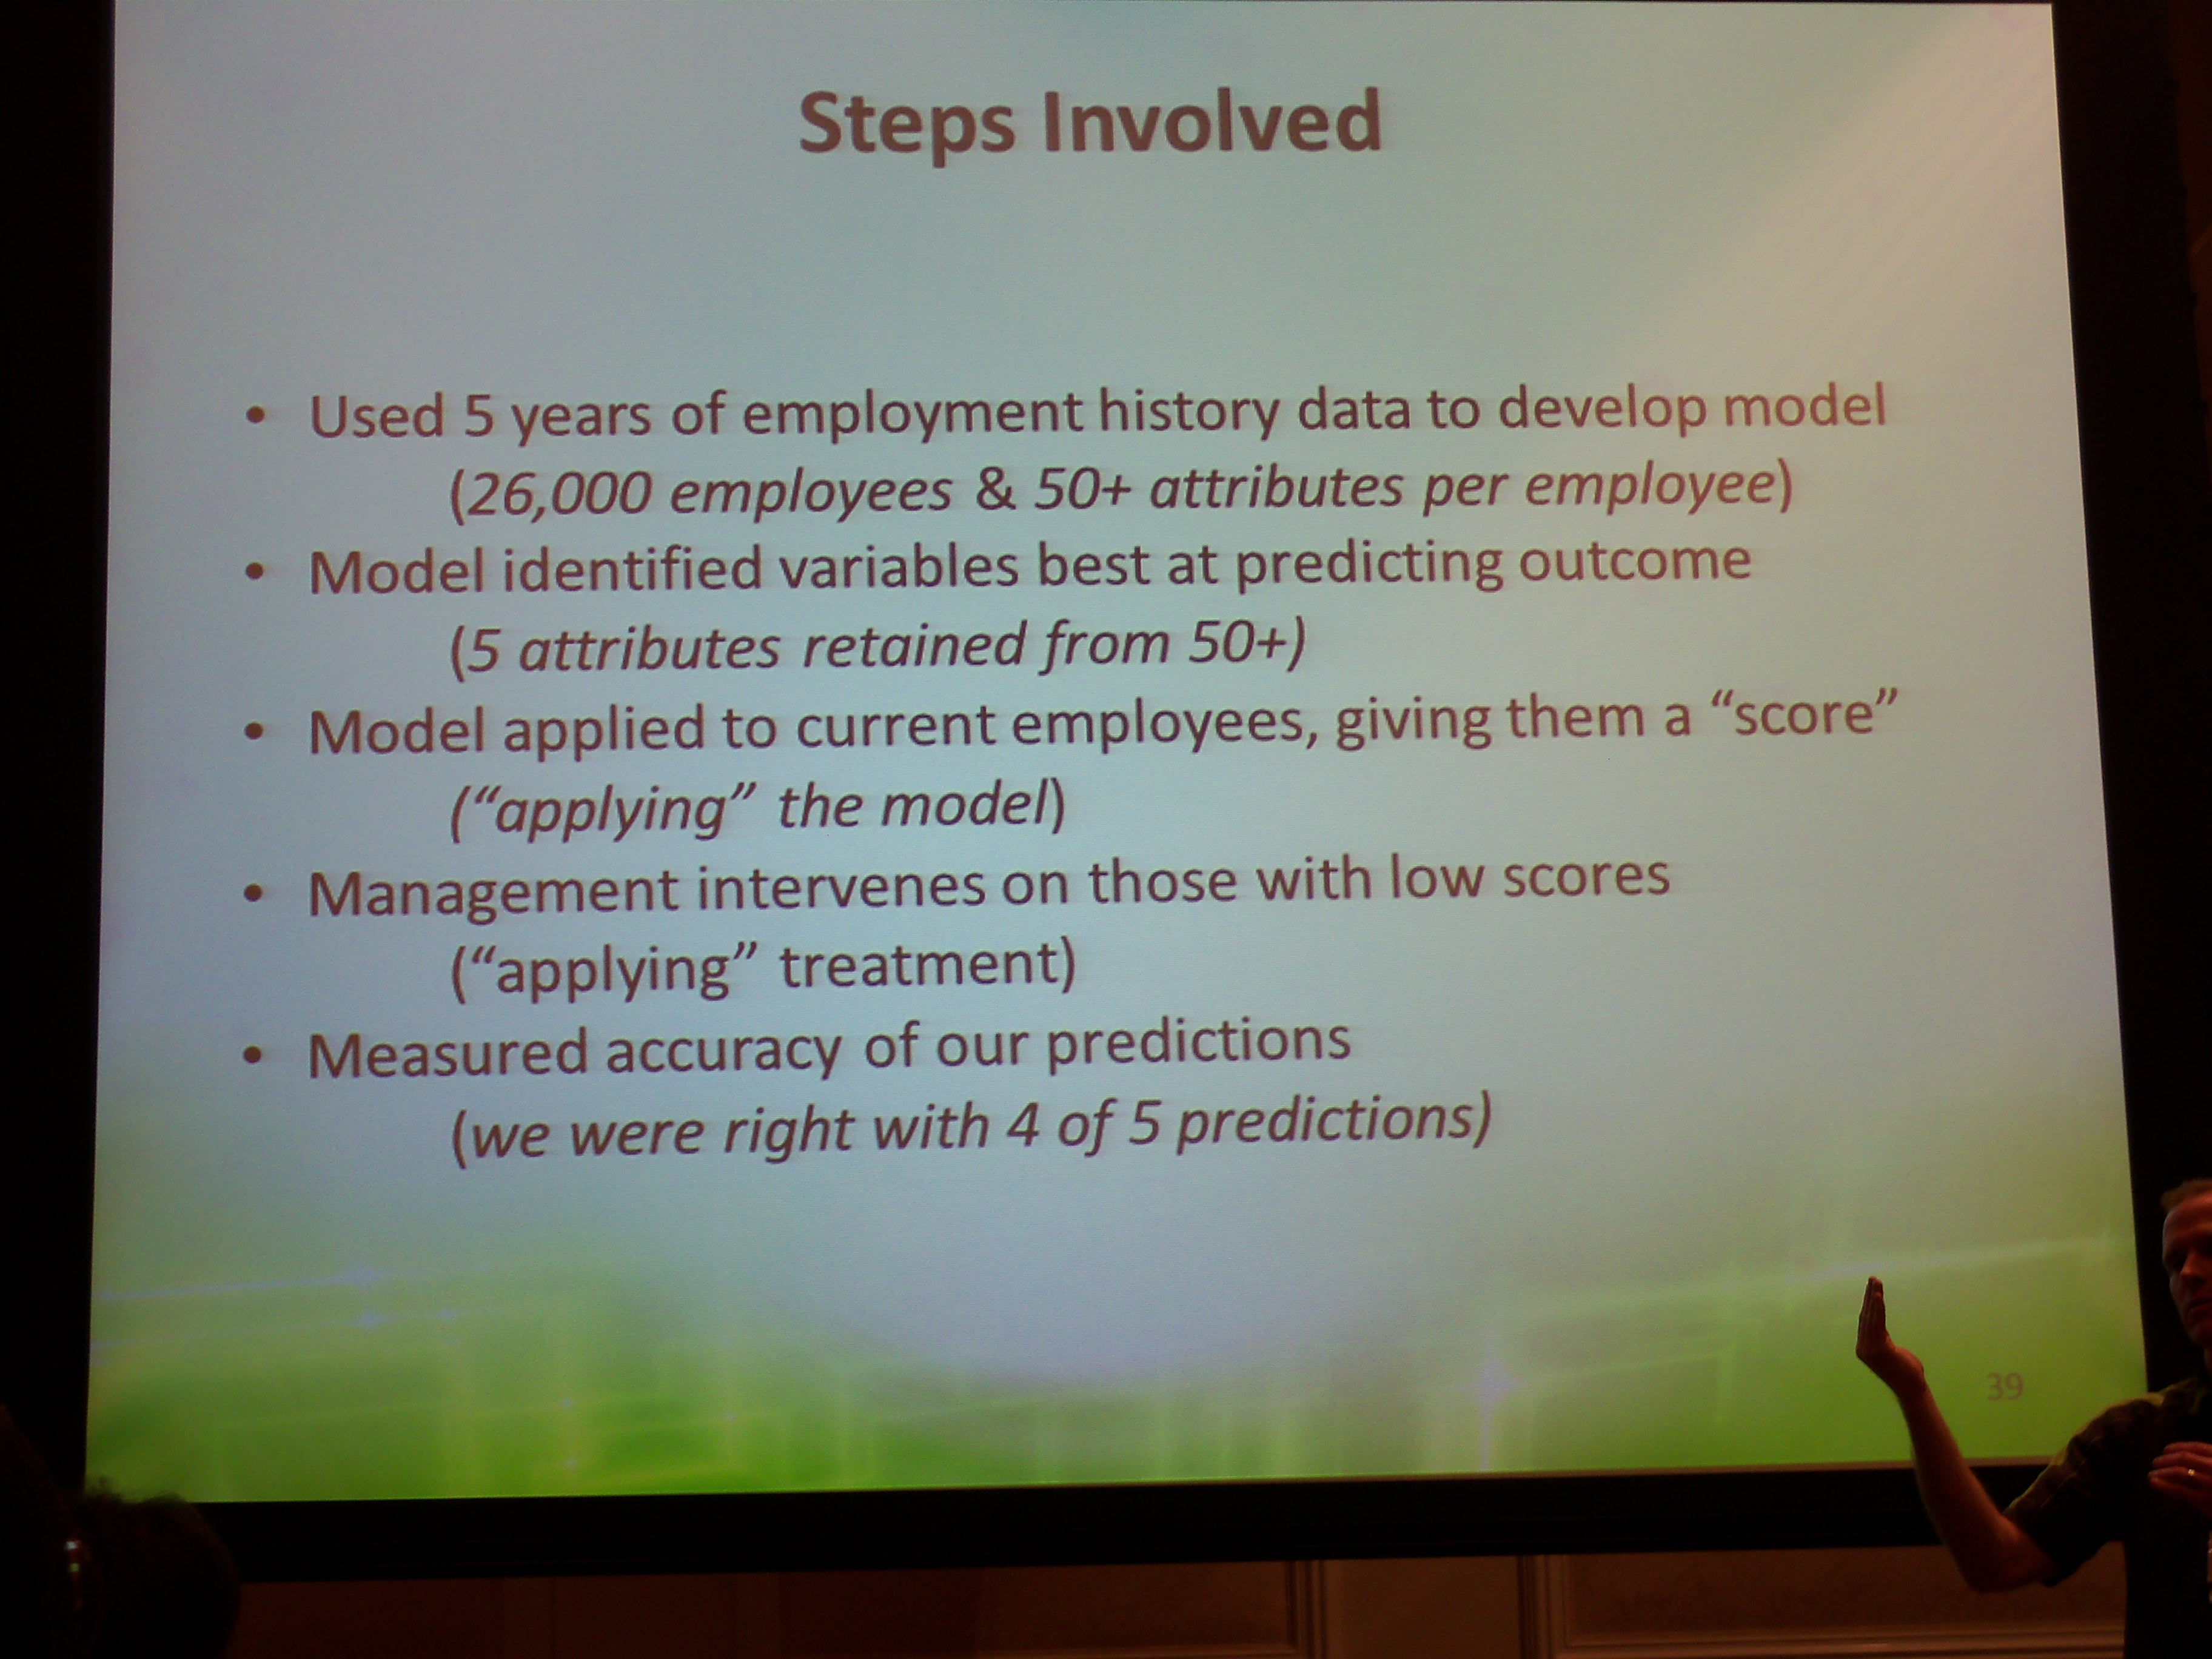 Predictive Analytic work steps - Copyright 2012 TechVentive, Inc.